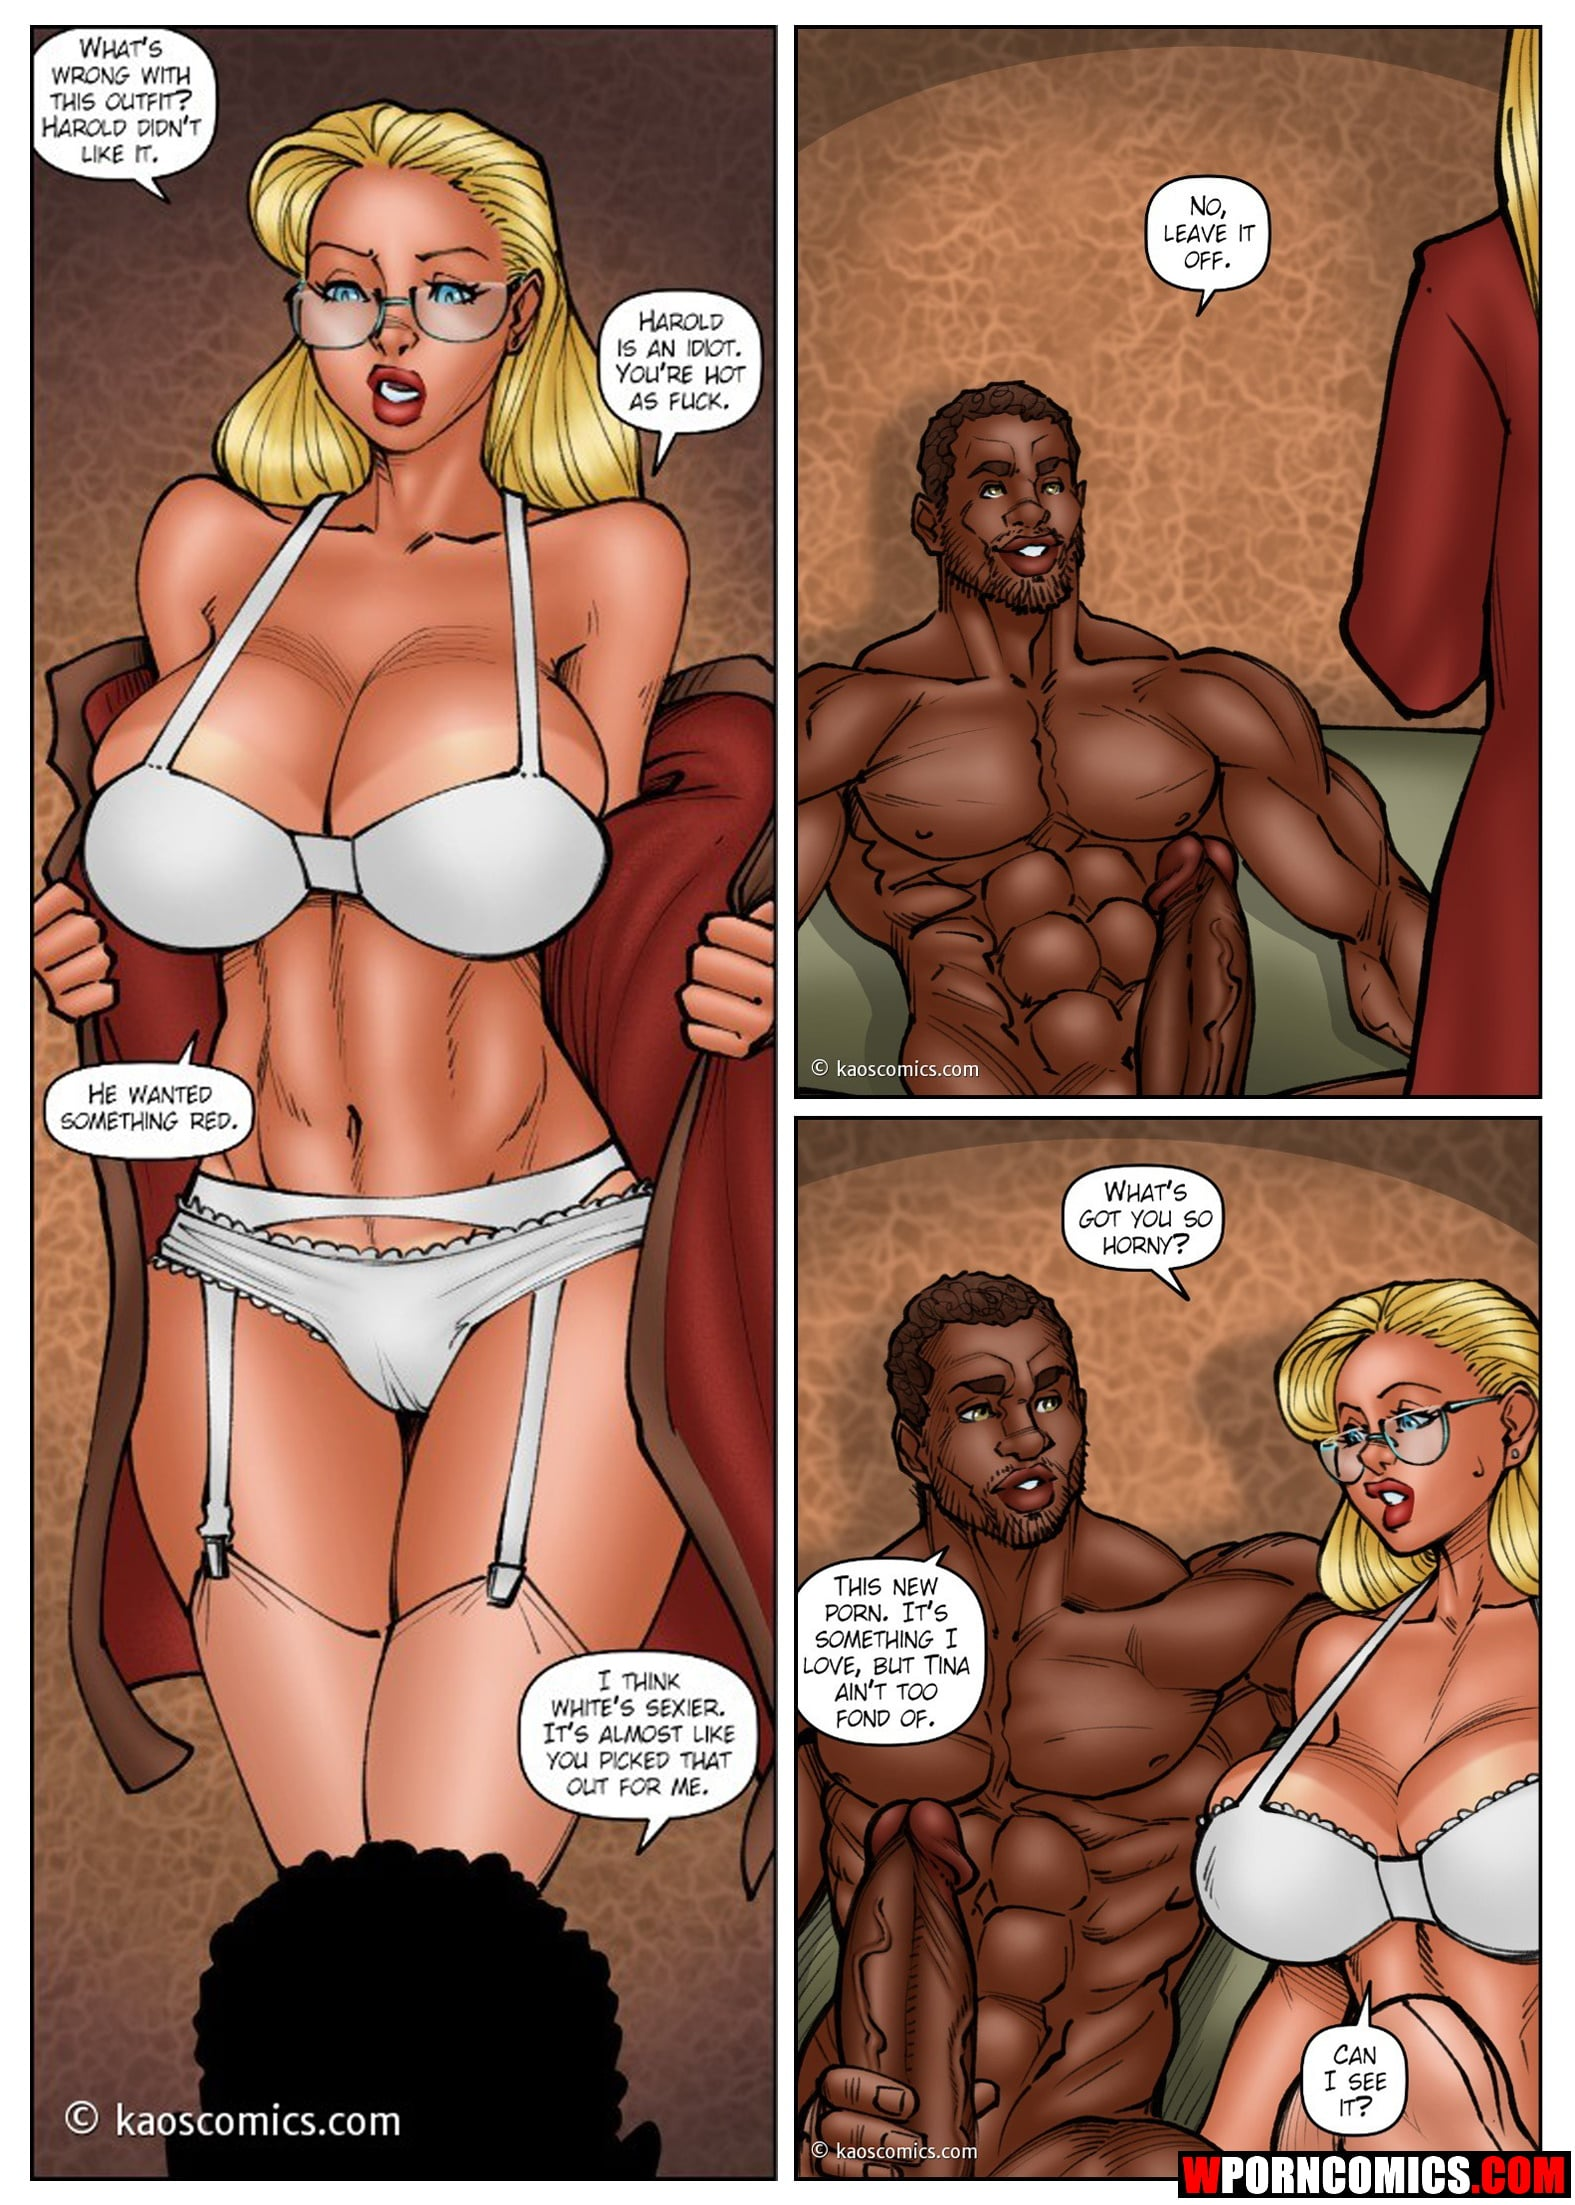 porn-comic-lessons-from-the-neighbor-the-third-lesson-2020-02-26/porn-comic-lessons-from-the-neighbor-the-third-lesson-2020-02-26-6095.jpg